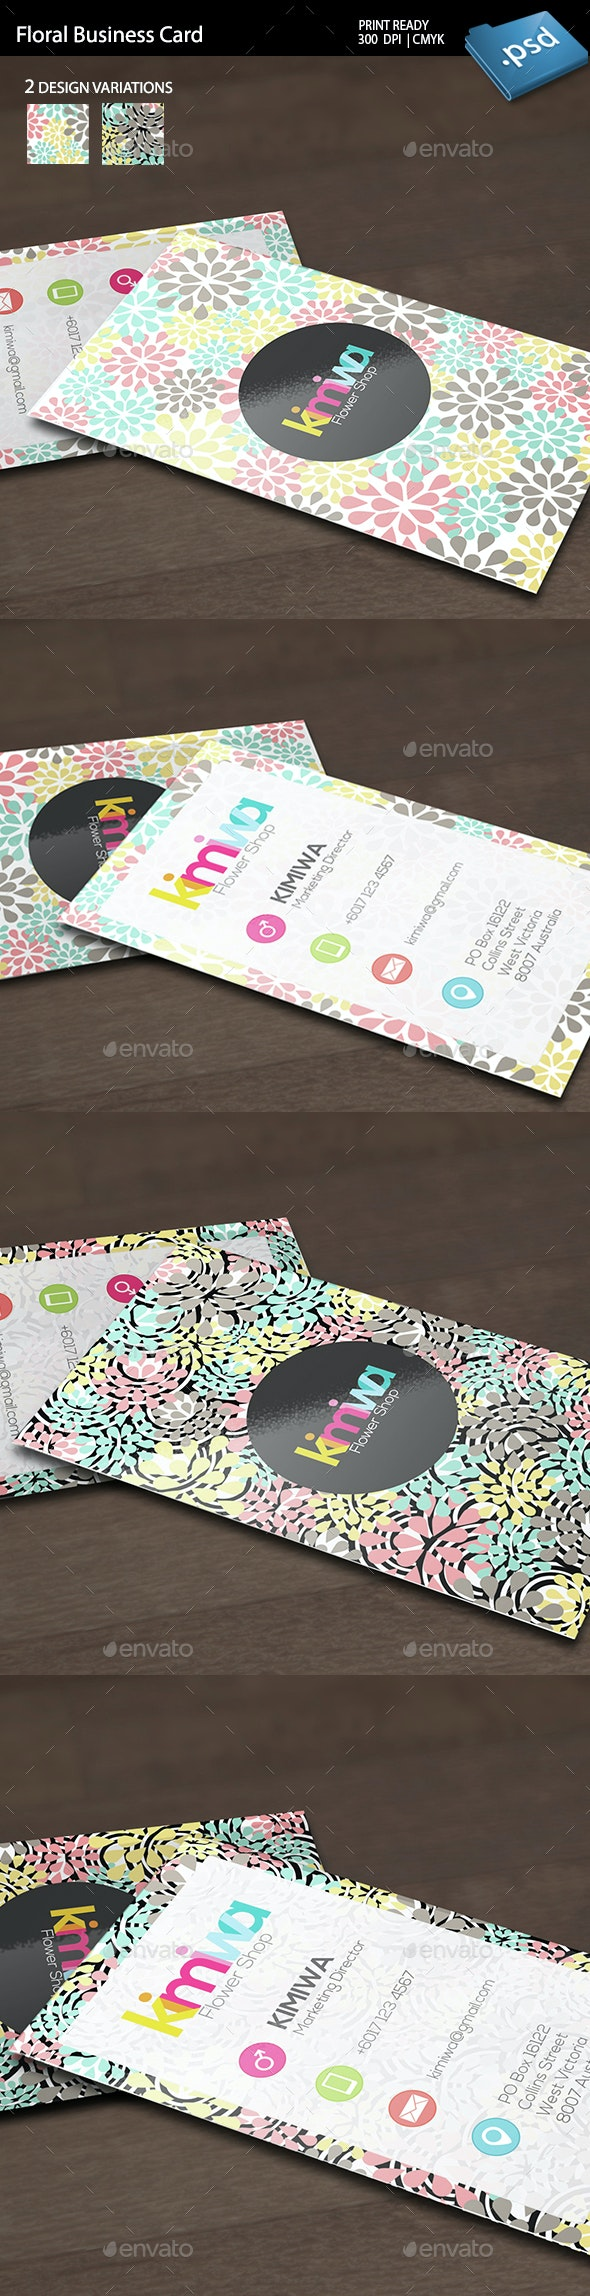 Floral Business Card Template - Business Cards Print Templates